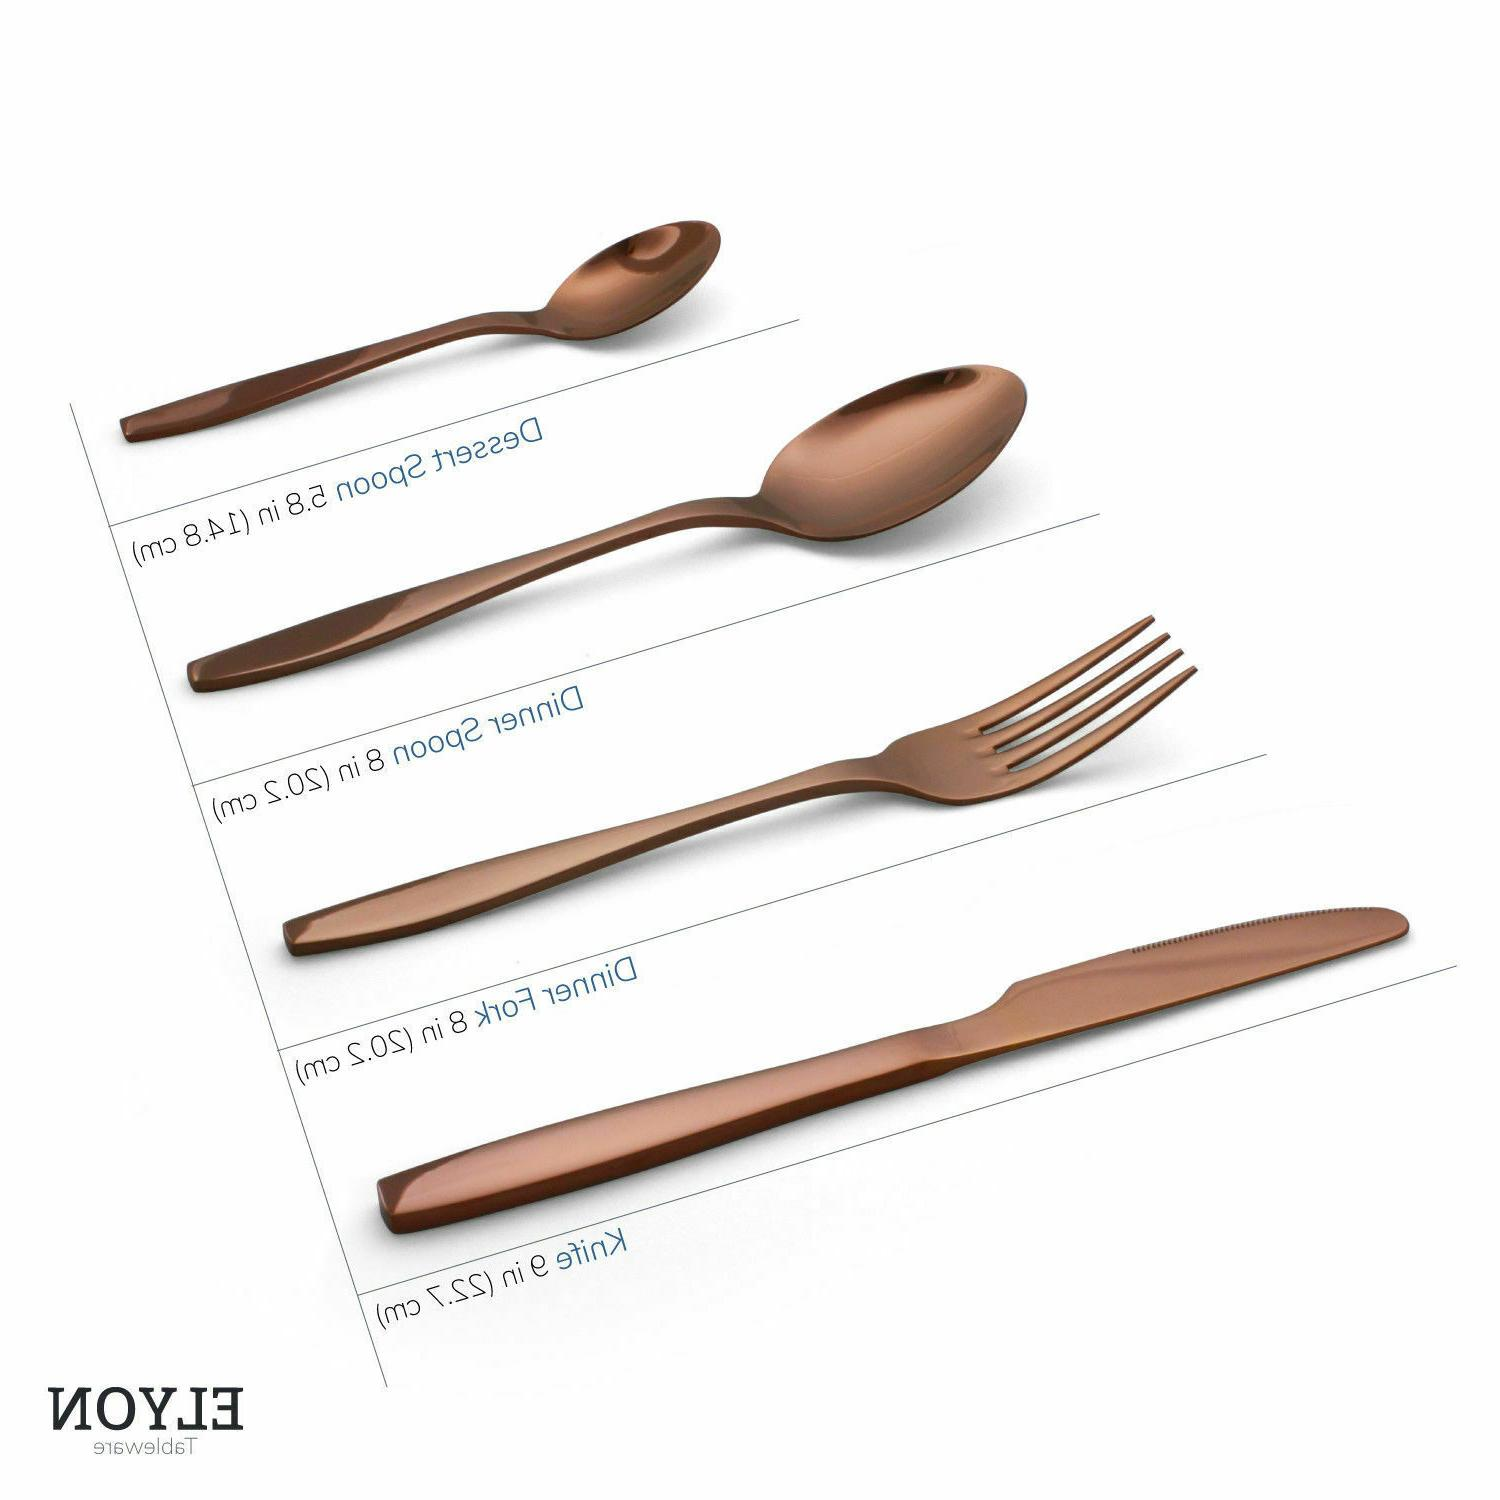 4 piece flatware set copper reflective stainless